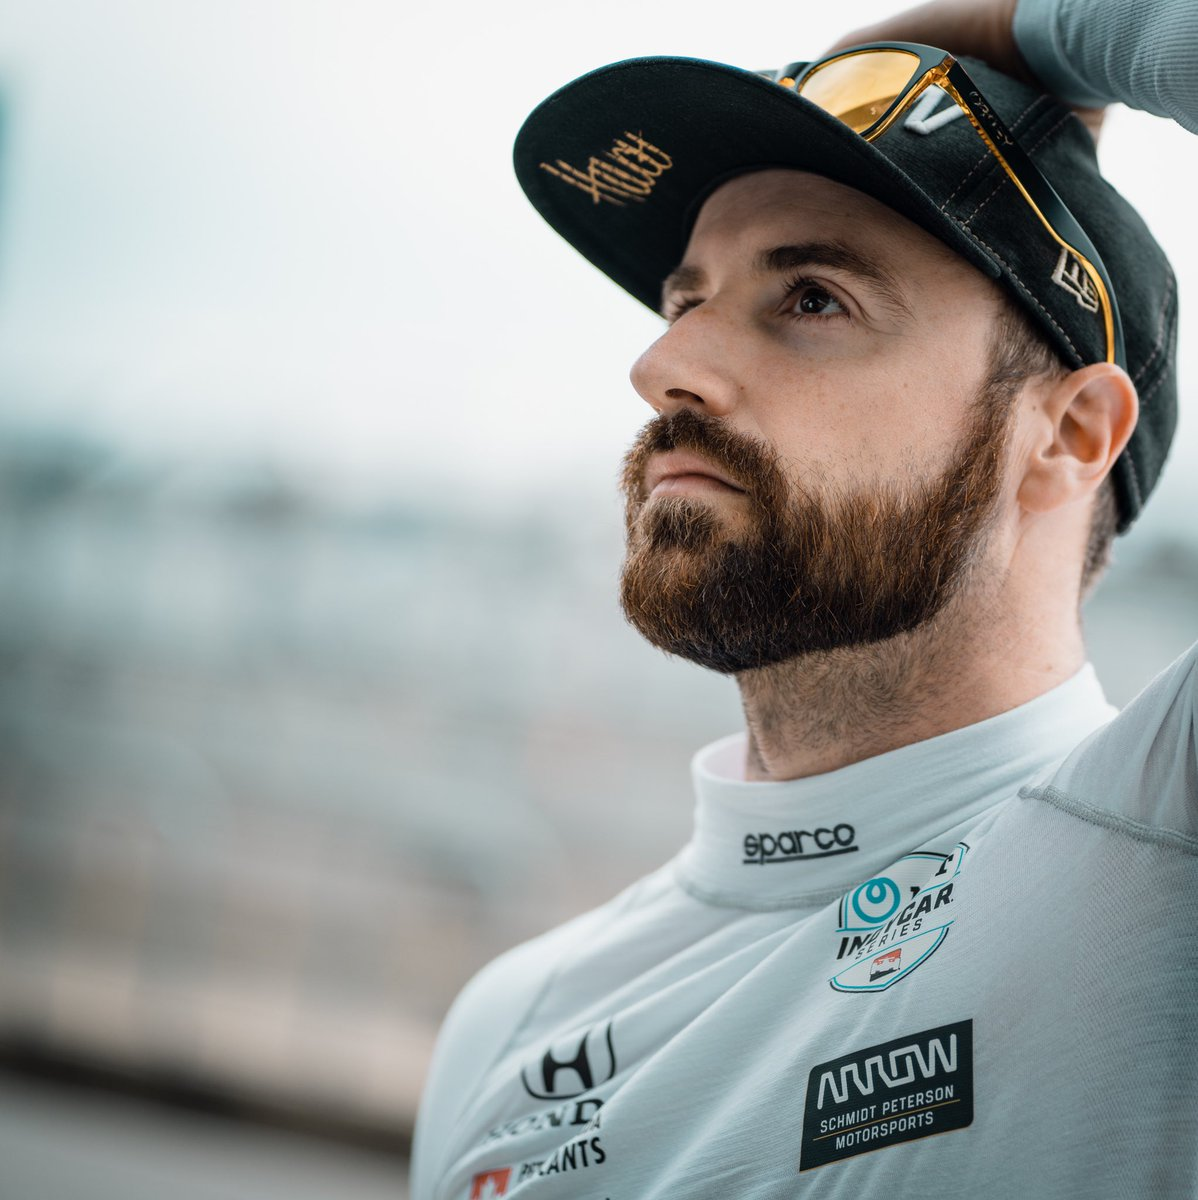 Unlucky break in qualy... but chins up because tomorrow's when it counts. We will be heads down and moving forward!  #INDYCAR // #5ToTheFront // @SPMIndyCar // @HondaRacing_HPD // @ArrowGlobal // #PetroCanadaLubricants<br>http://pic.twitter.com/6fWh5wPpDg